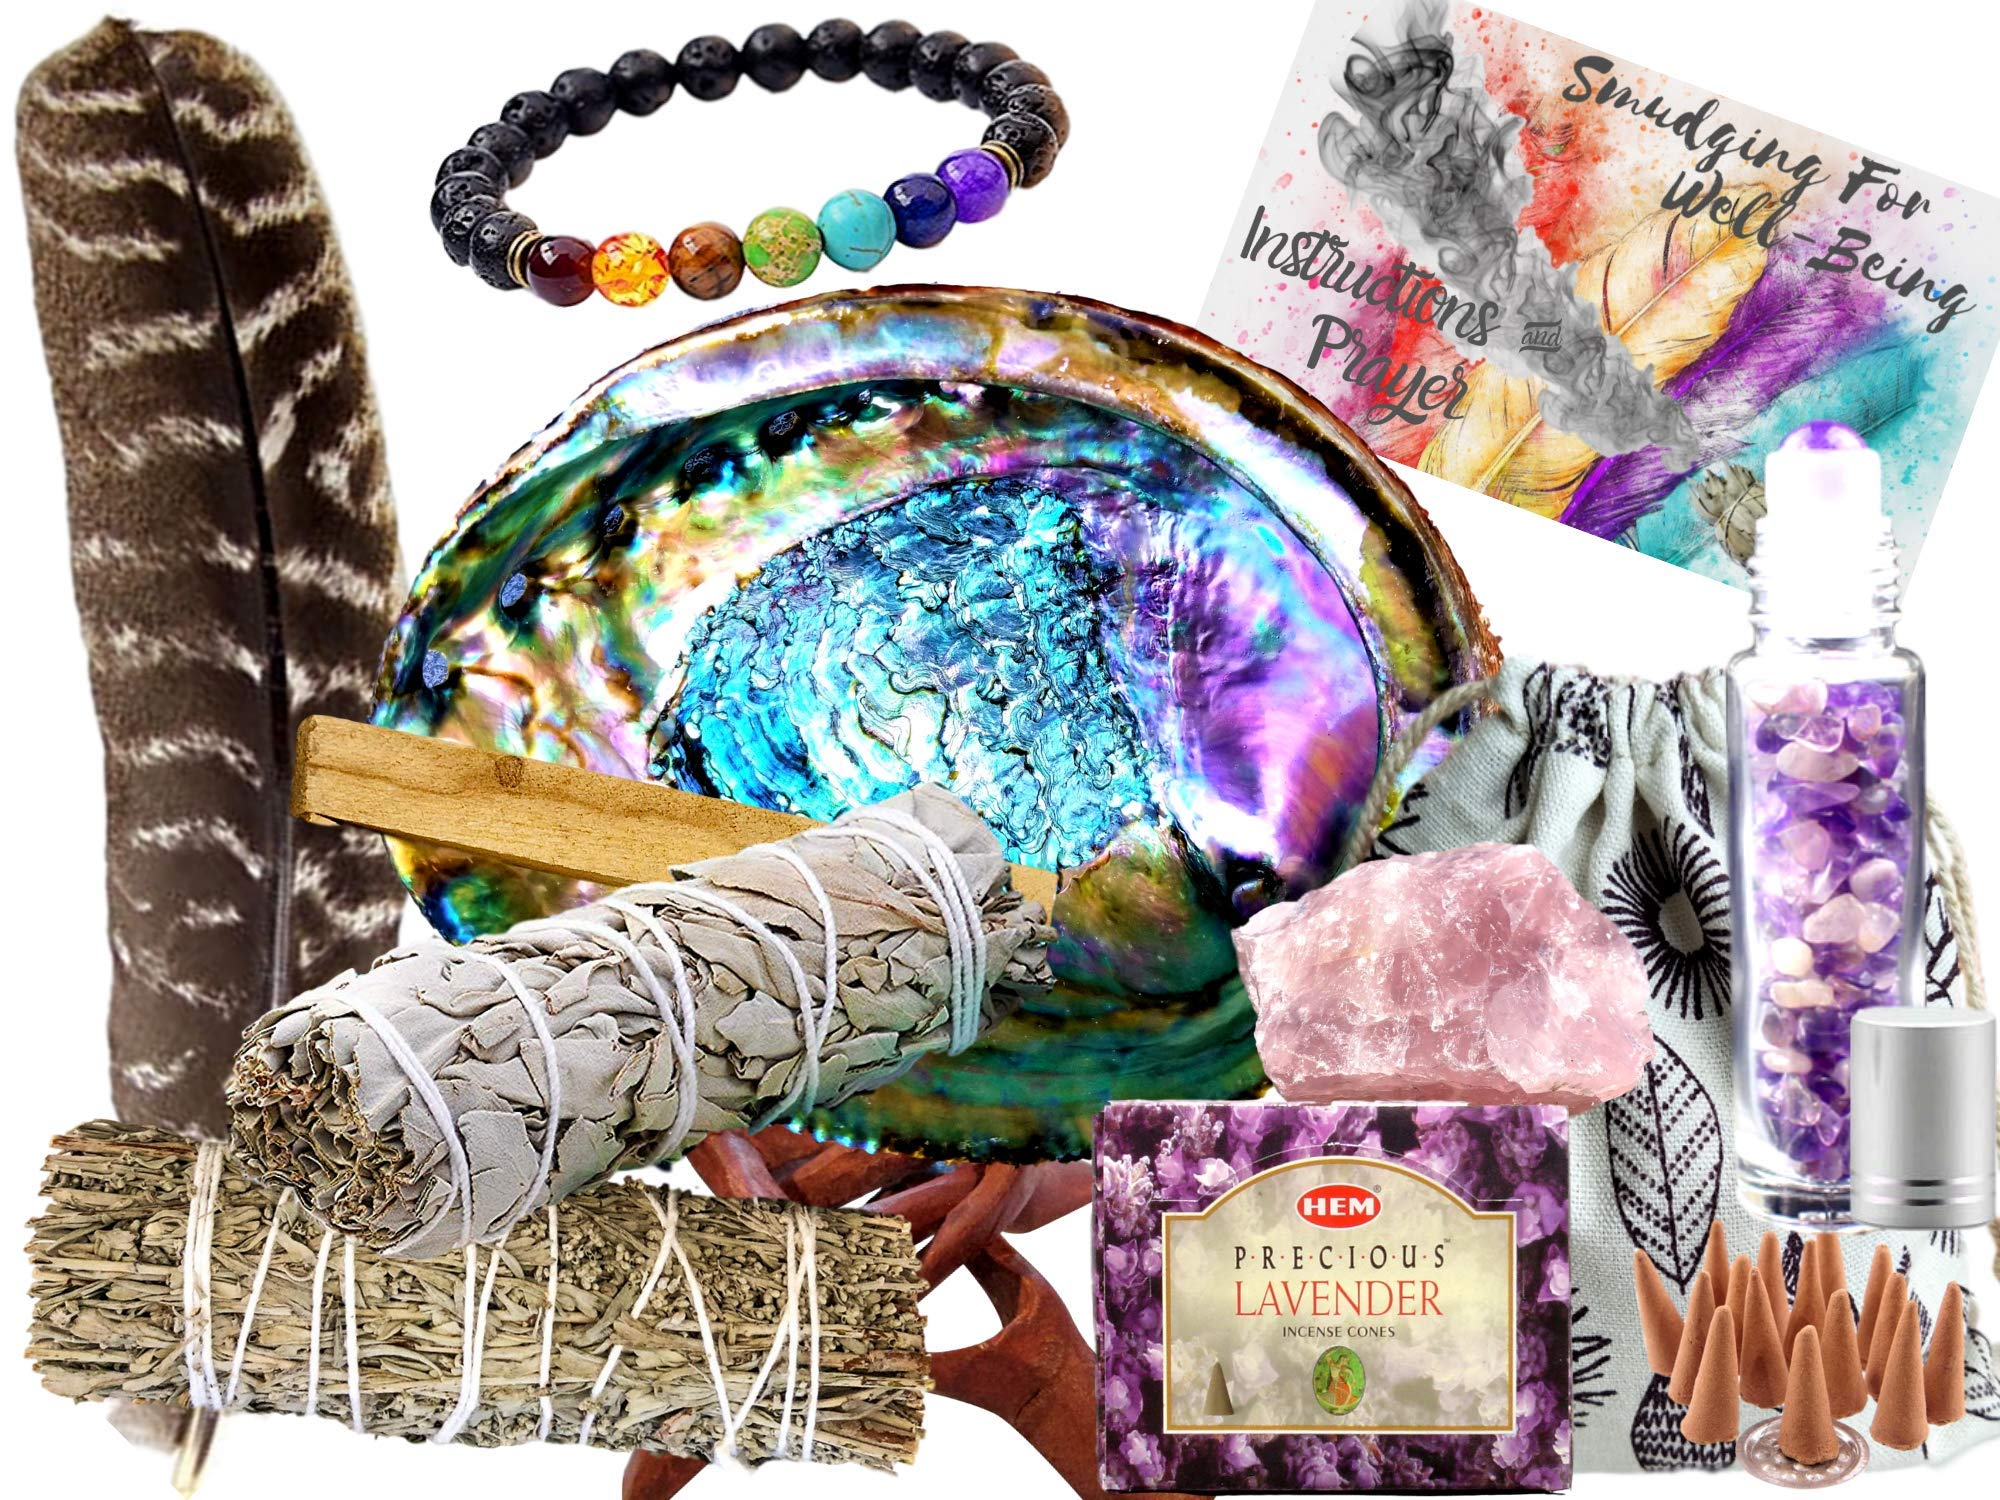 Sage Smudge Kit: ULTIMATE 12 Piece Spiritual Gifts Variety Smudging Kit: XL Abalone Shell, White Sage & Blue Sage Smudge Sticks, Palo Santo, Healing Crystals Amethyst Roller,Chakra Bracelet,More! by Worldly Finds